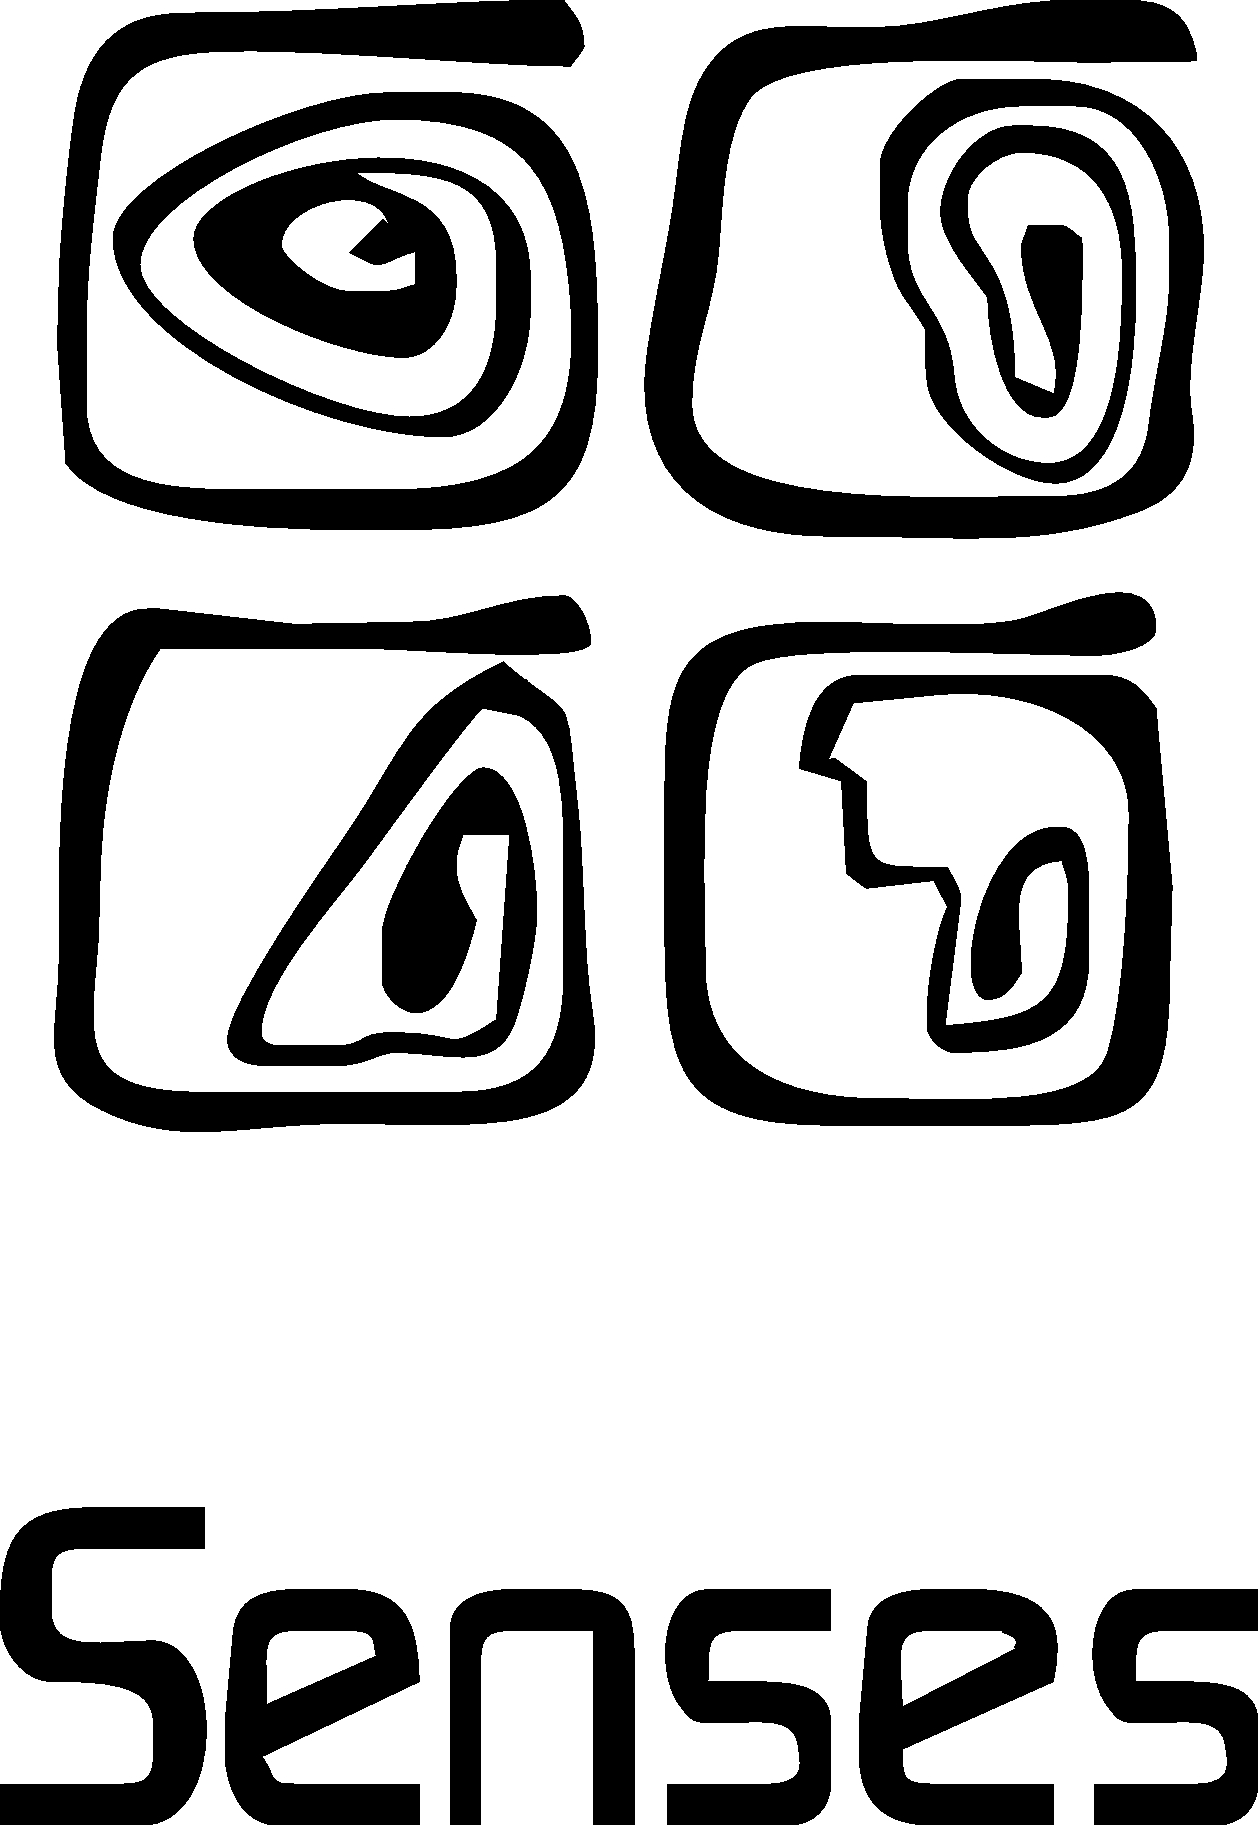 Sensen clipart ophthalmologist Ear View West And And